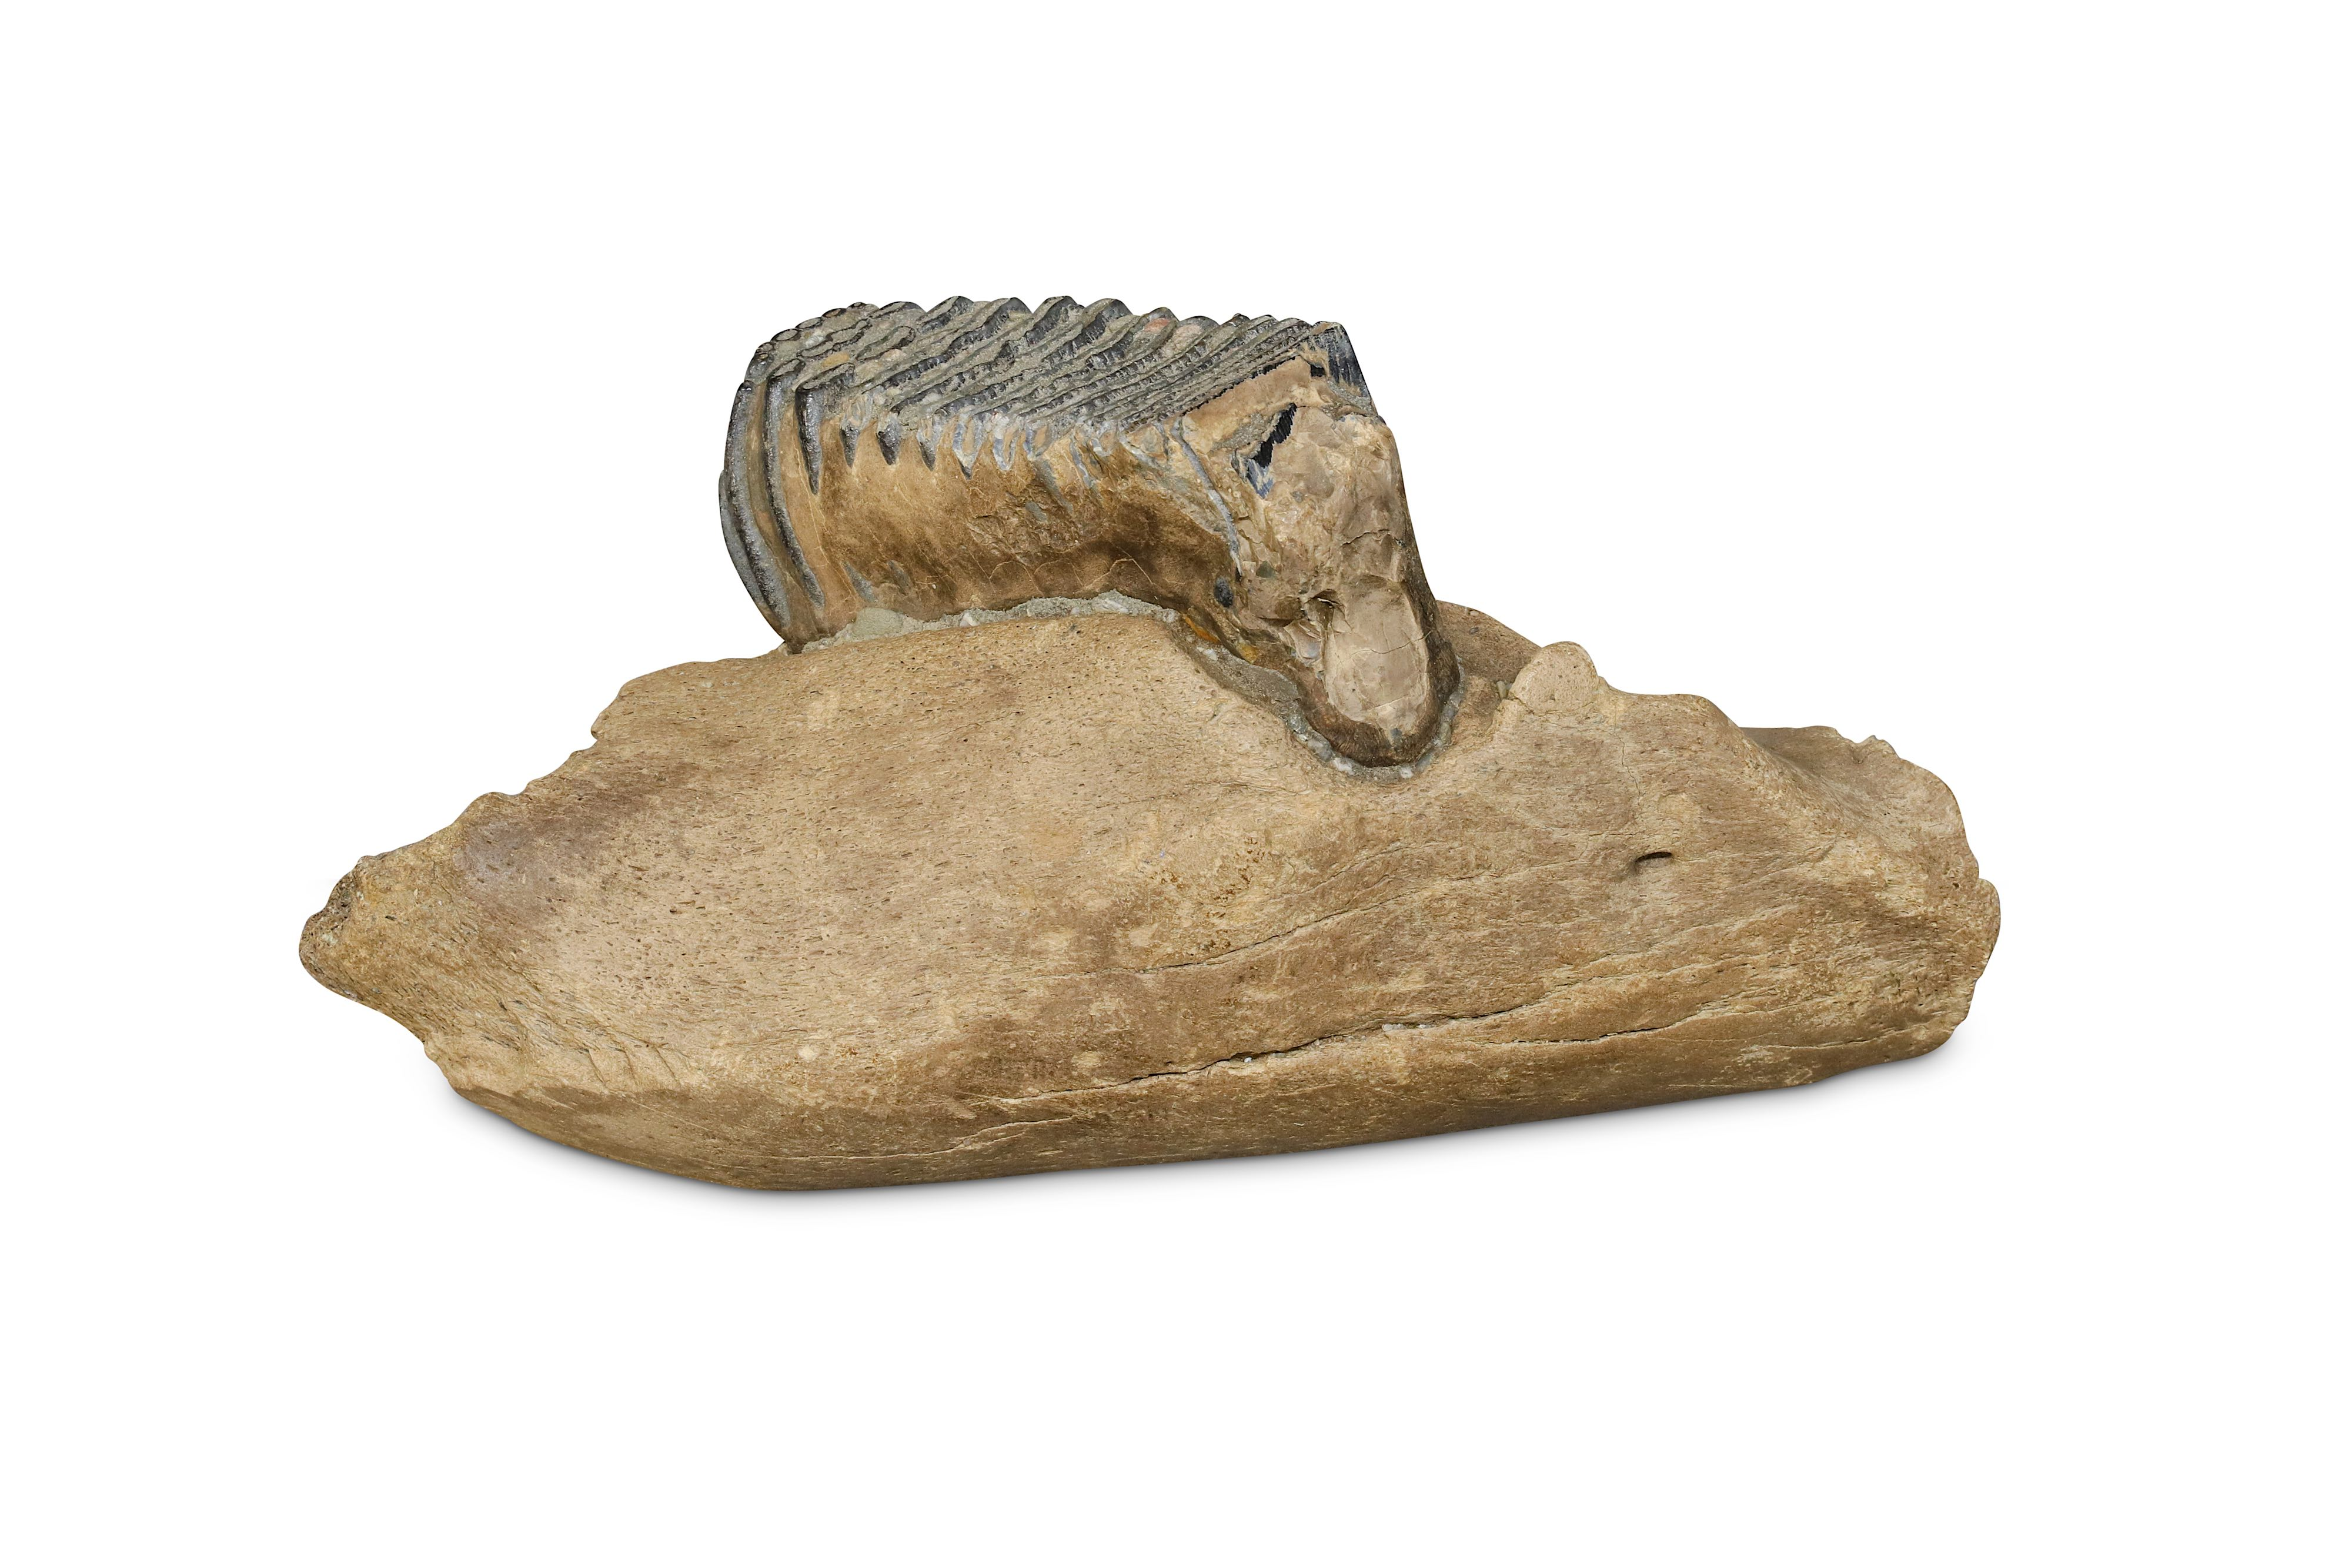 Lot 16 - WOOLLY MAMMOTH (MAMMUTHUS PRIMIGENIUS), A MOLAR LOWER JAW